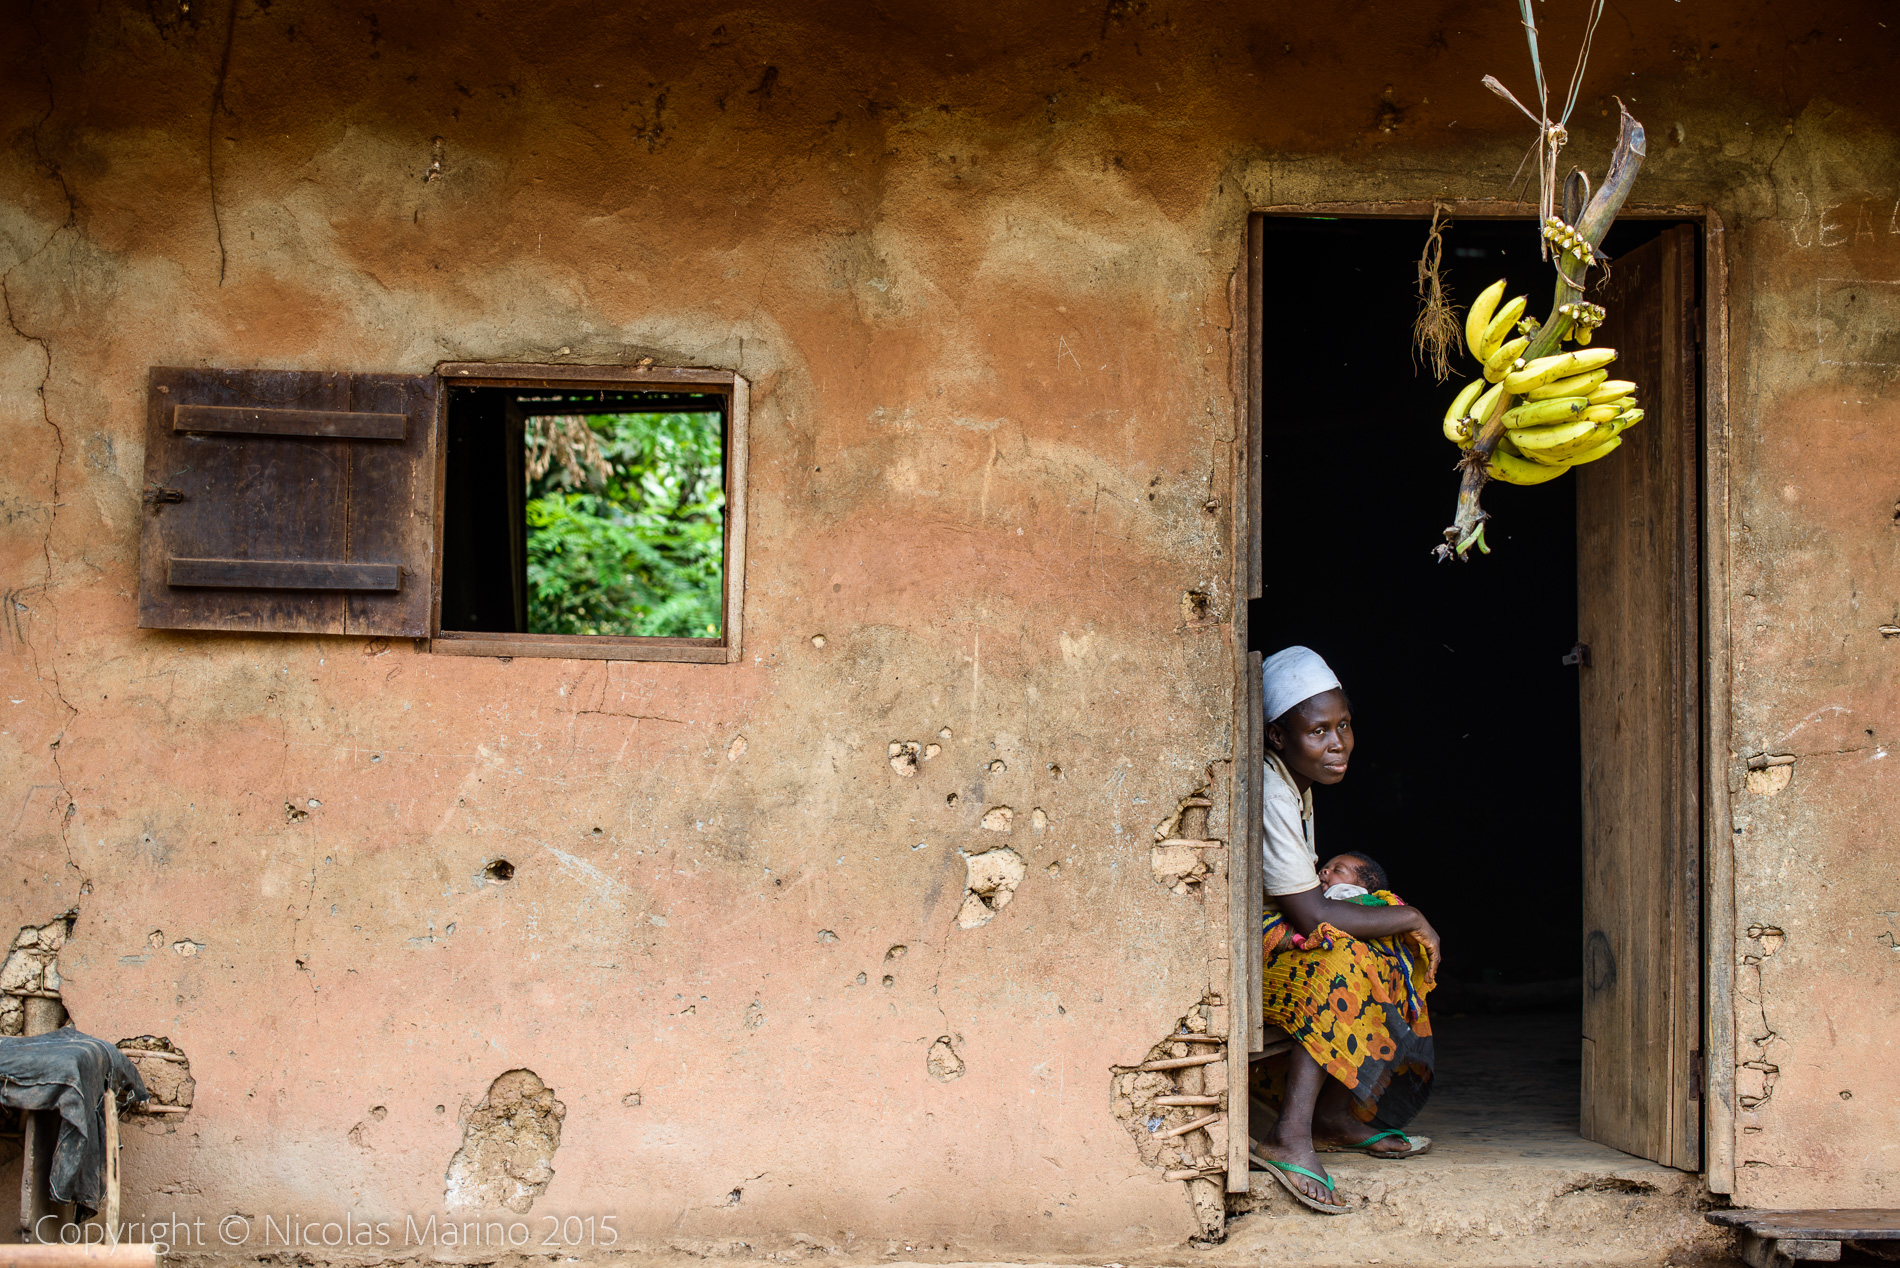 Rural life in Cameroon.